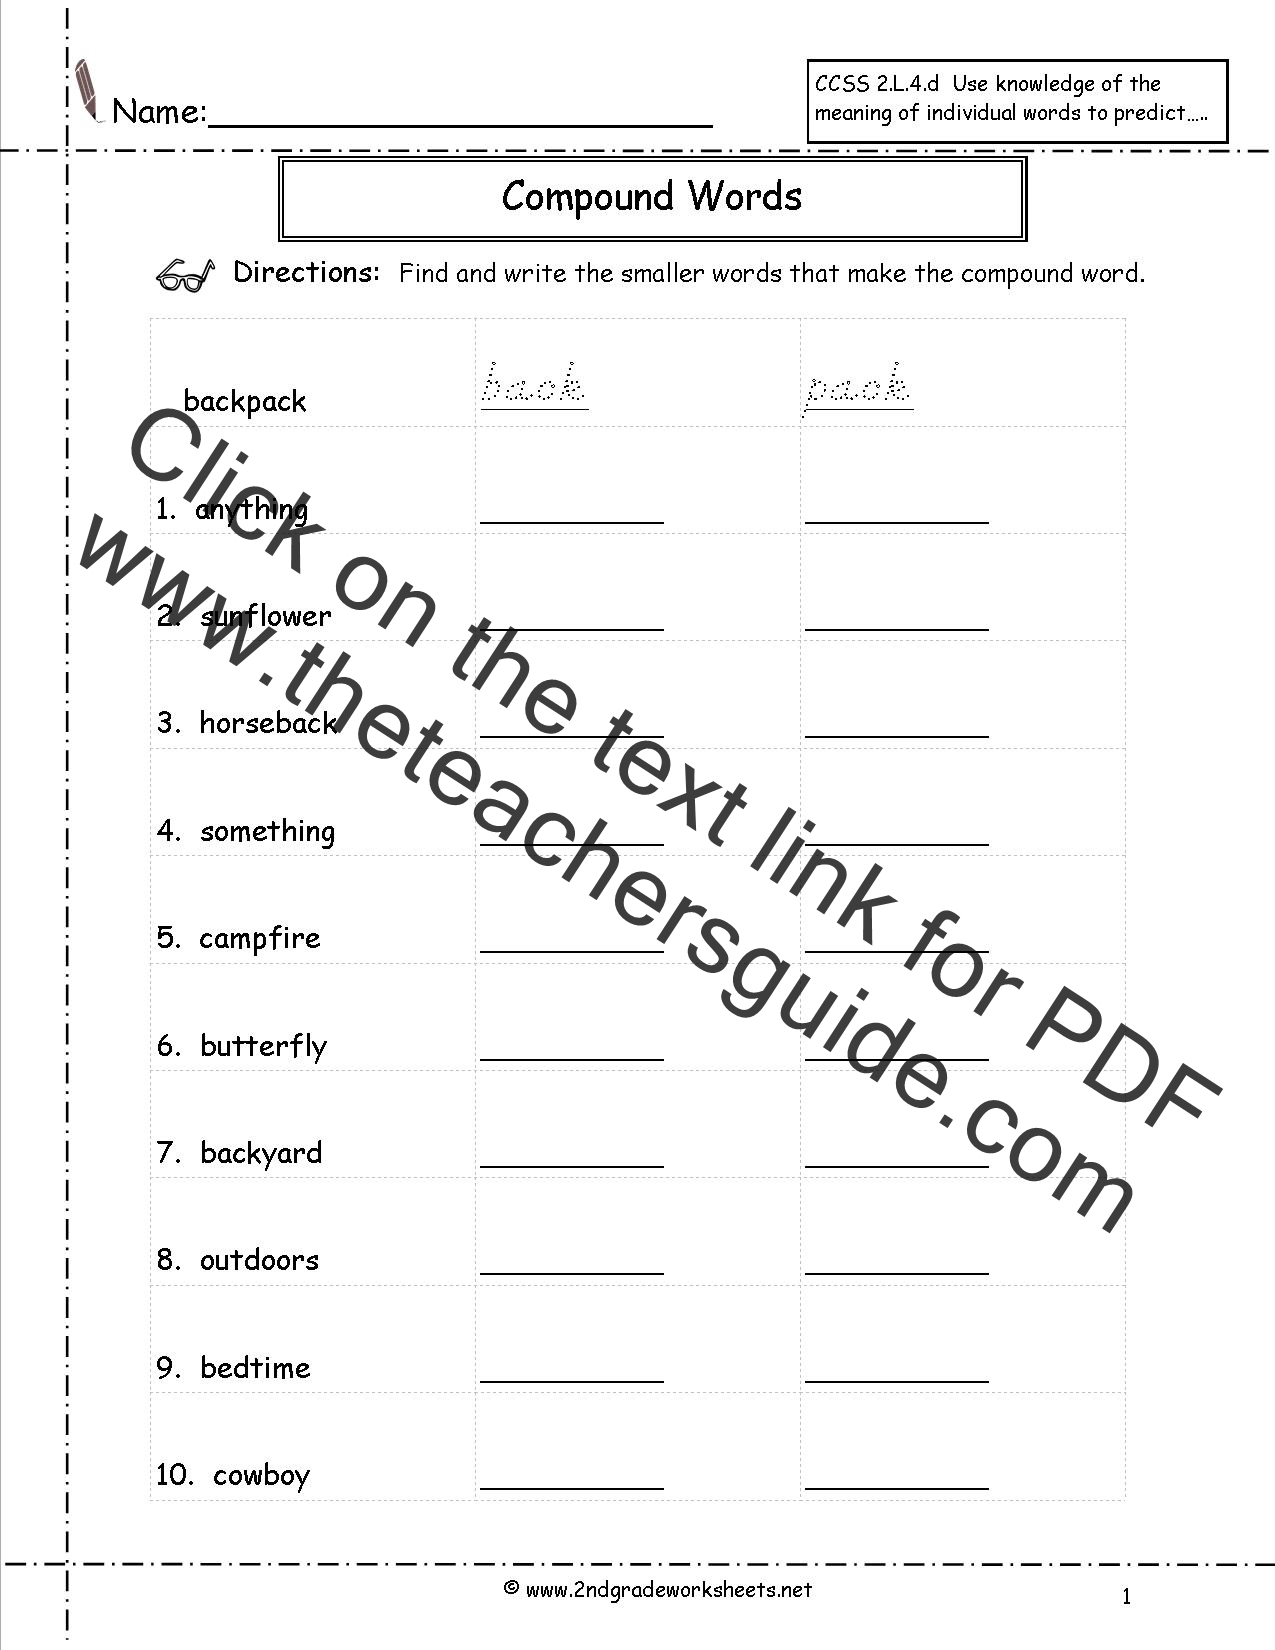 Printables 2nd Grade Worksheets Printable free languagegrammar worksheets and printouts compound words worksheets